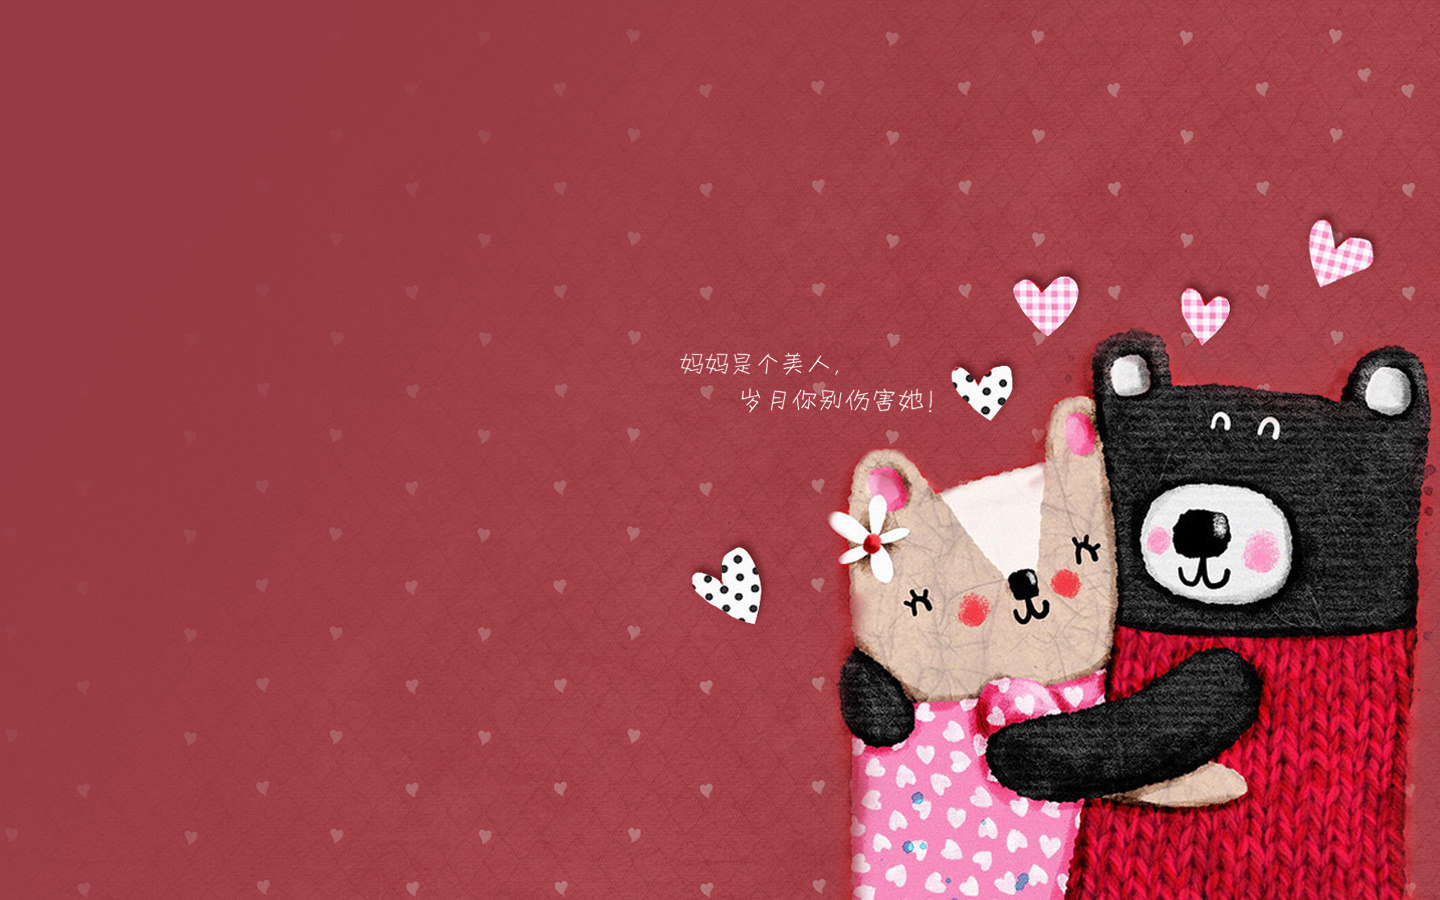 download Wallpapers Wallpaper Cute Valentines Wallpapers 1440x900